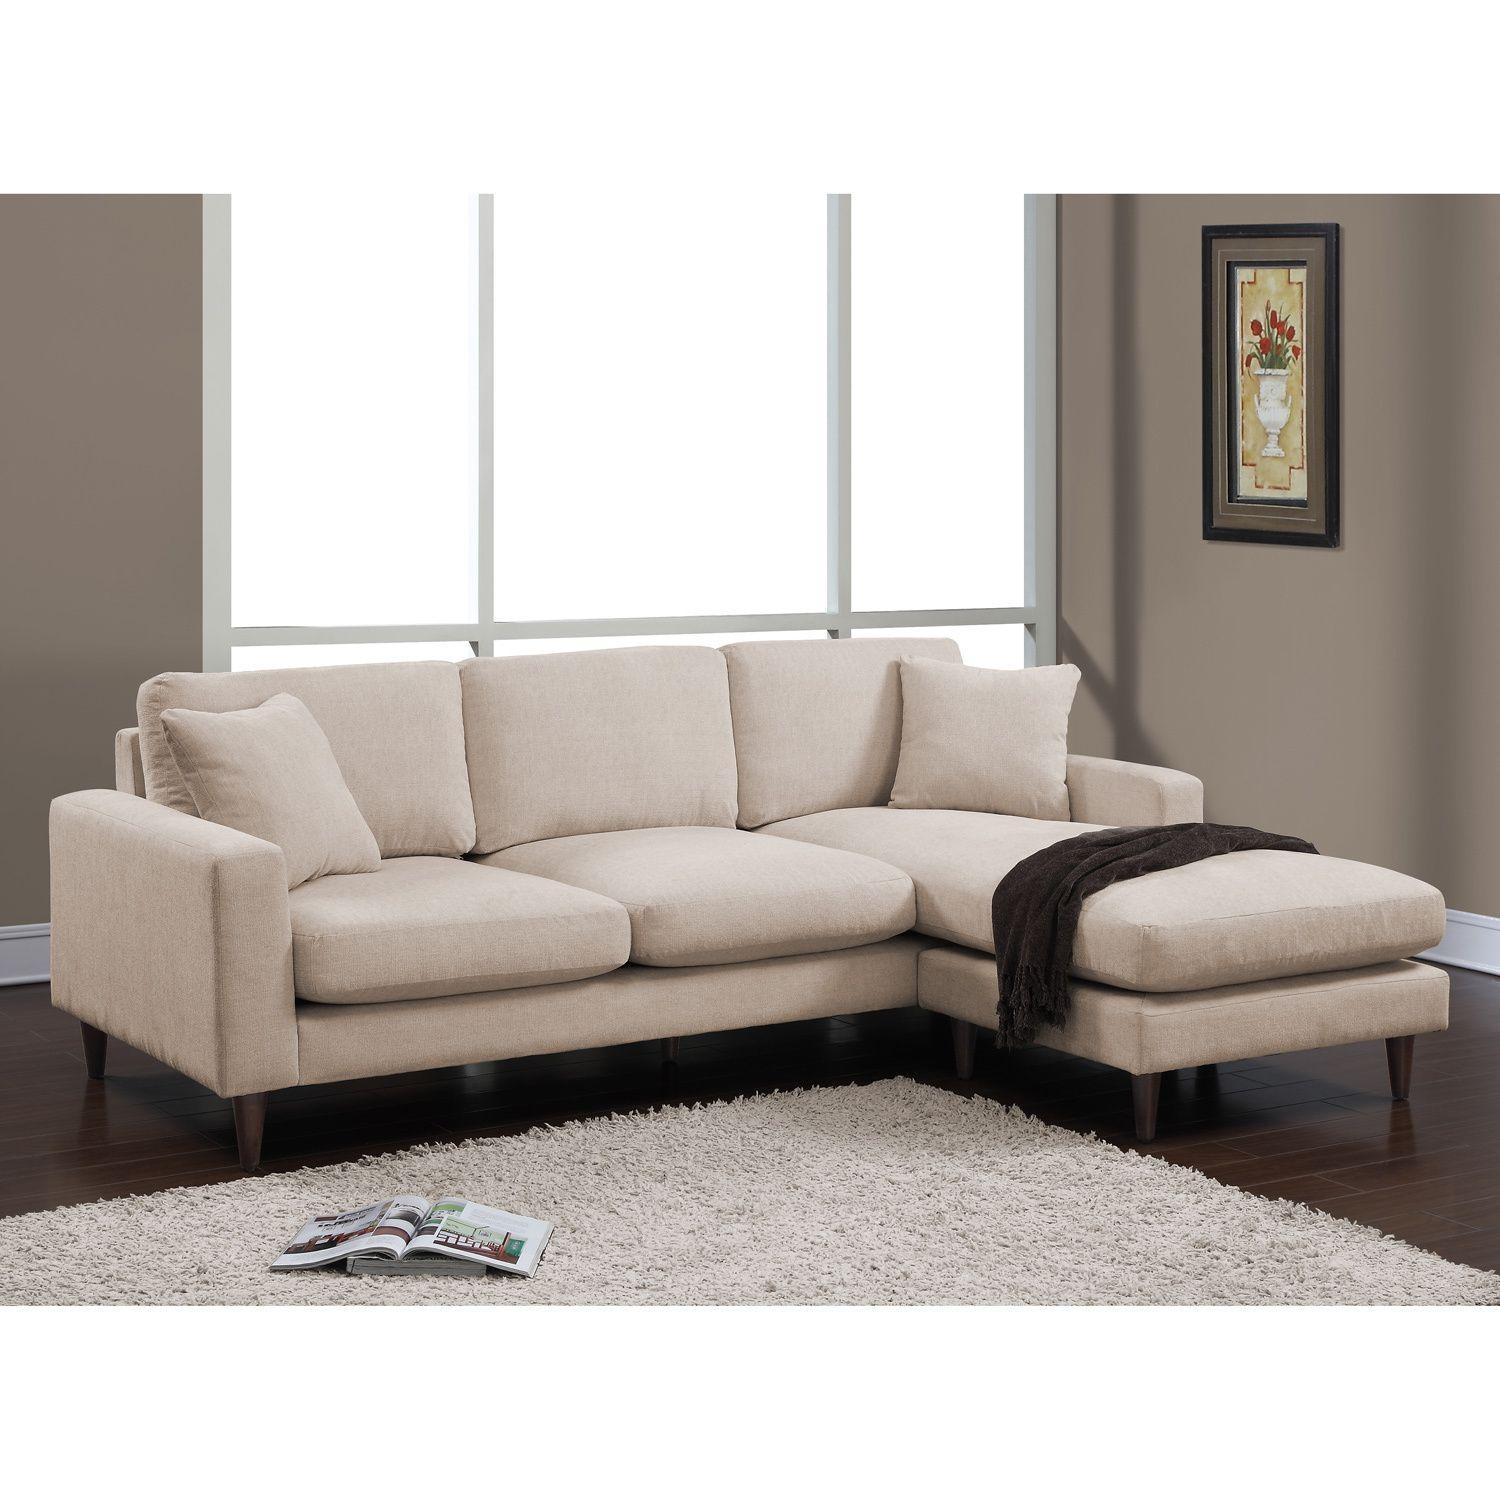 Fashionable Down Sectional Sofa Color Options — Home Design In Down Sectional Sofa (View 3 of 15)